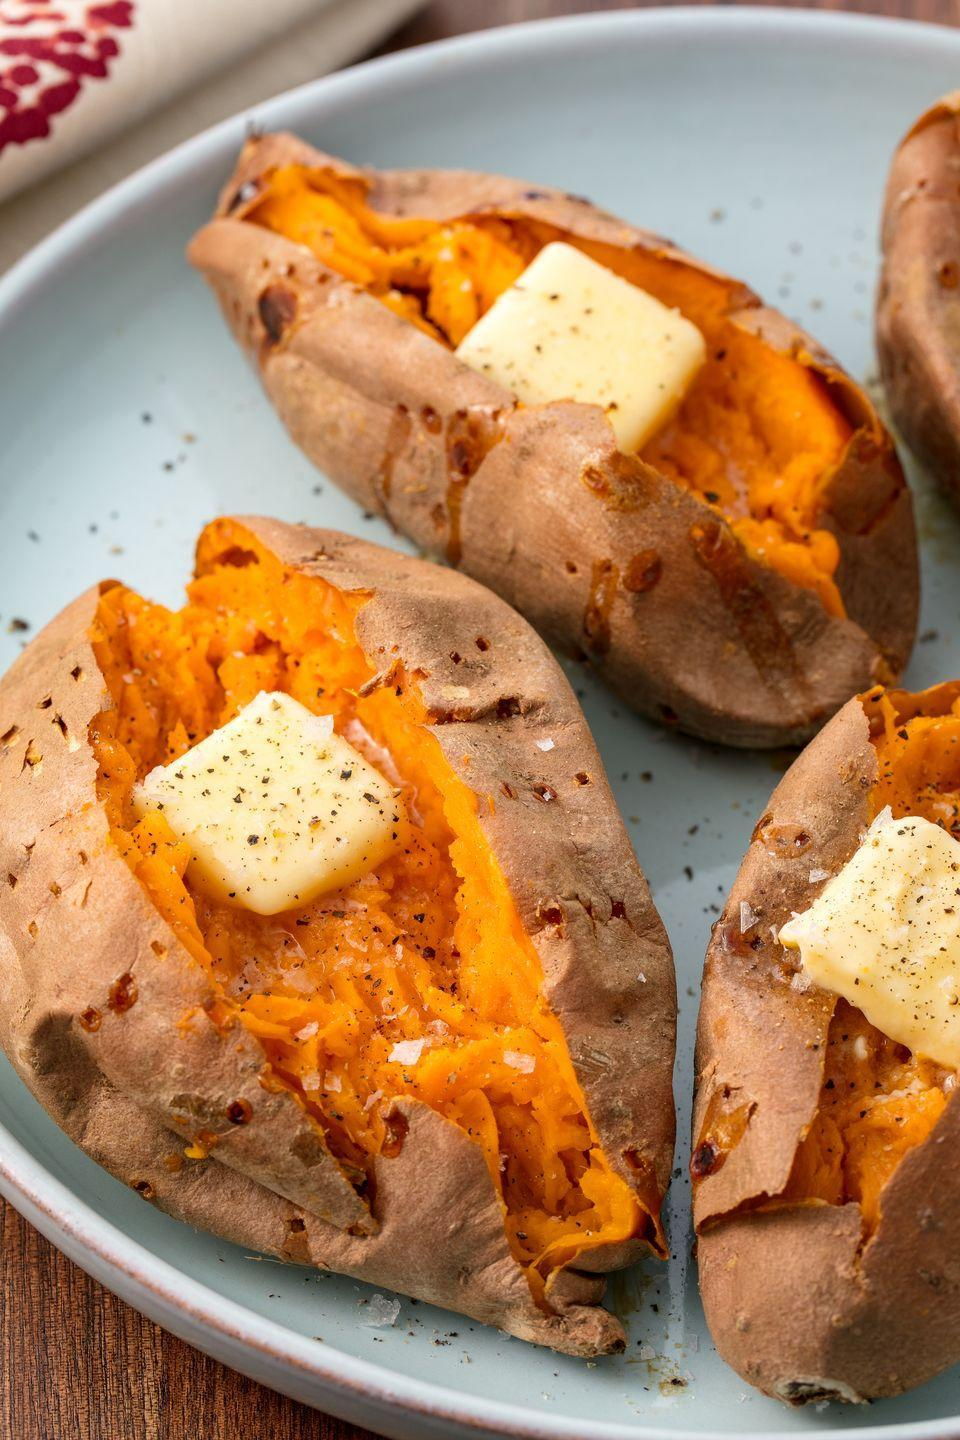 "<p>Who knew something so simple could be so perfect?</p><p>Get the recipe from <a href=""https://www.delish.com/cooking/recipe-ideas/recipes/a55377/perfect-baked-sweet-potato-recipe/"" rel=""nofollow noopener"" target=""_blank"" data-ylk=""slk:Delish"" class=""link rapid-noclick-resp"">Delish</a>.</p>"